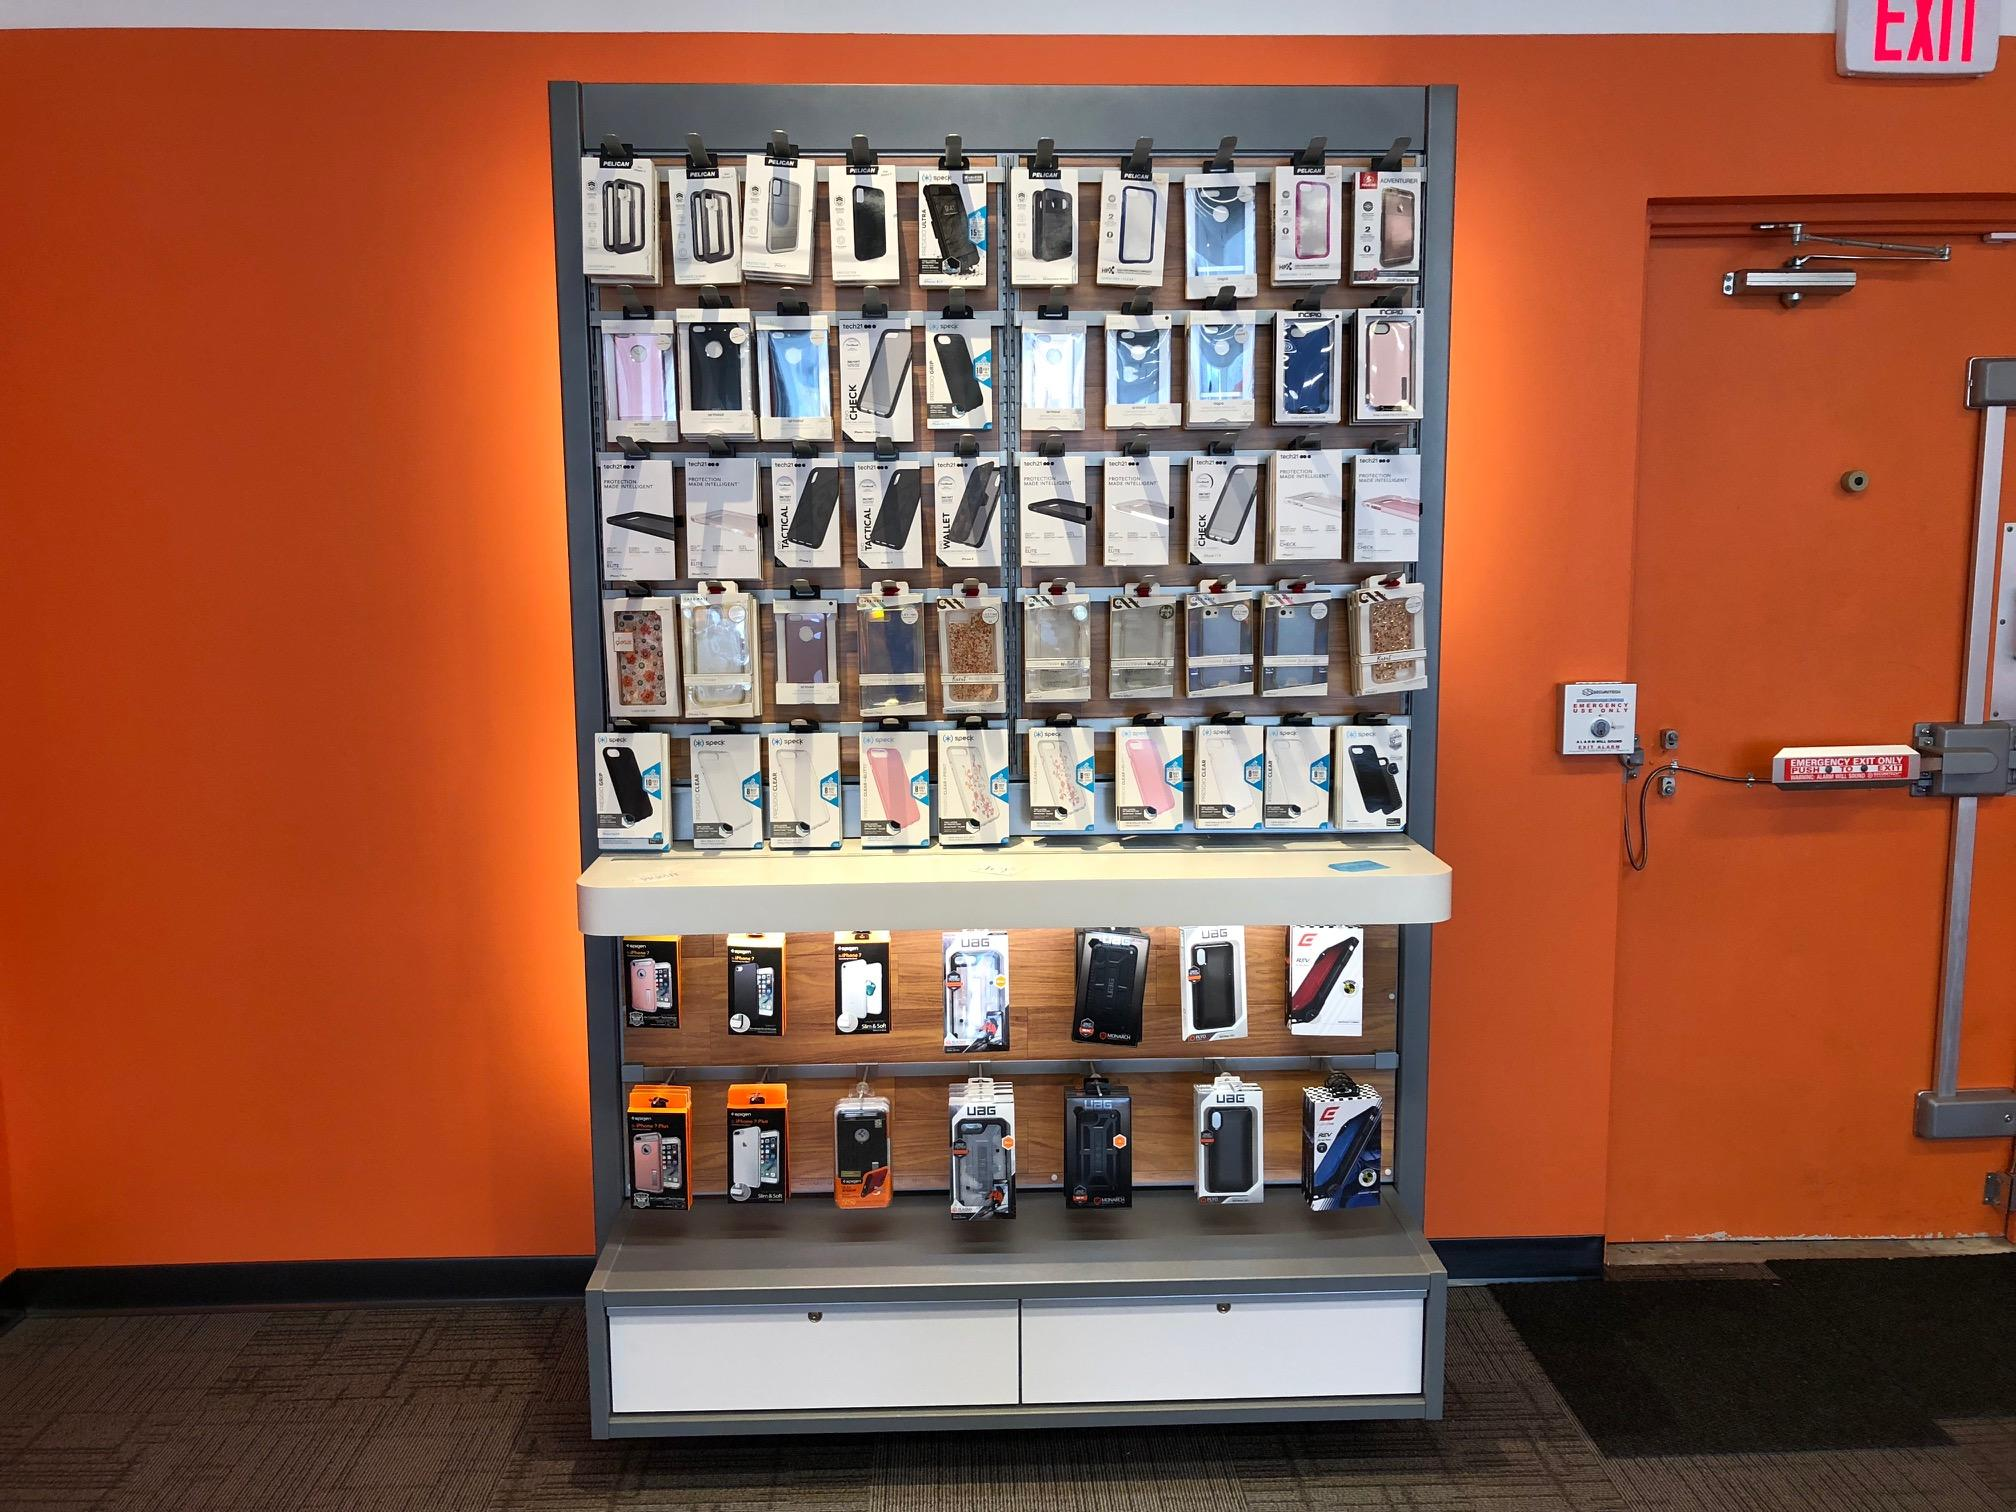 AT&T Store image 6